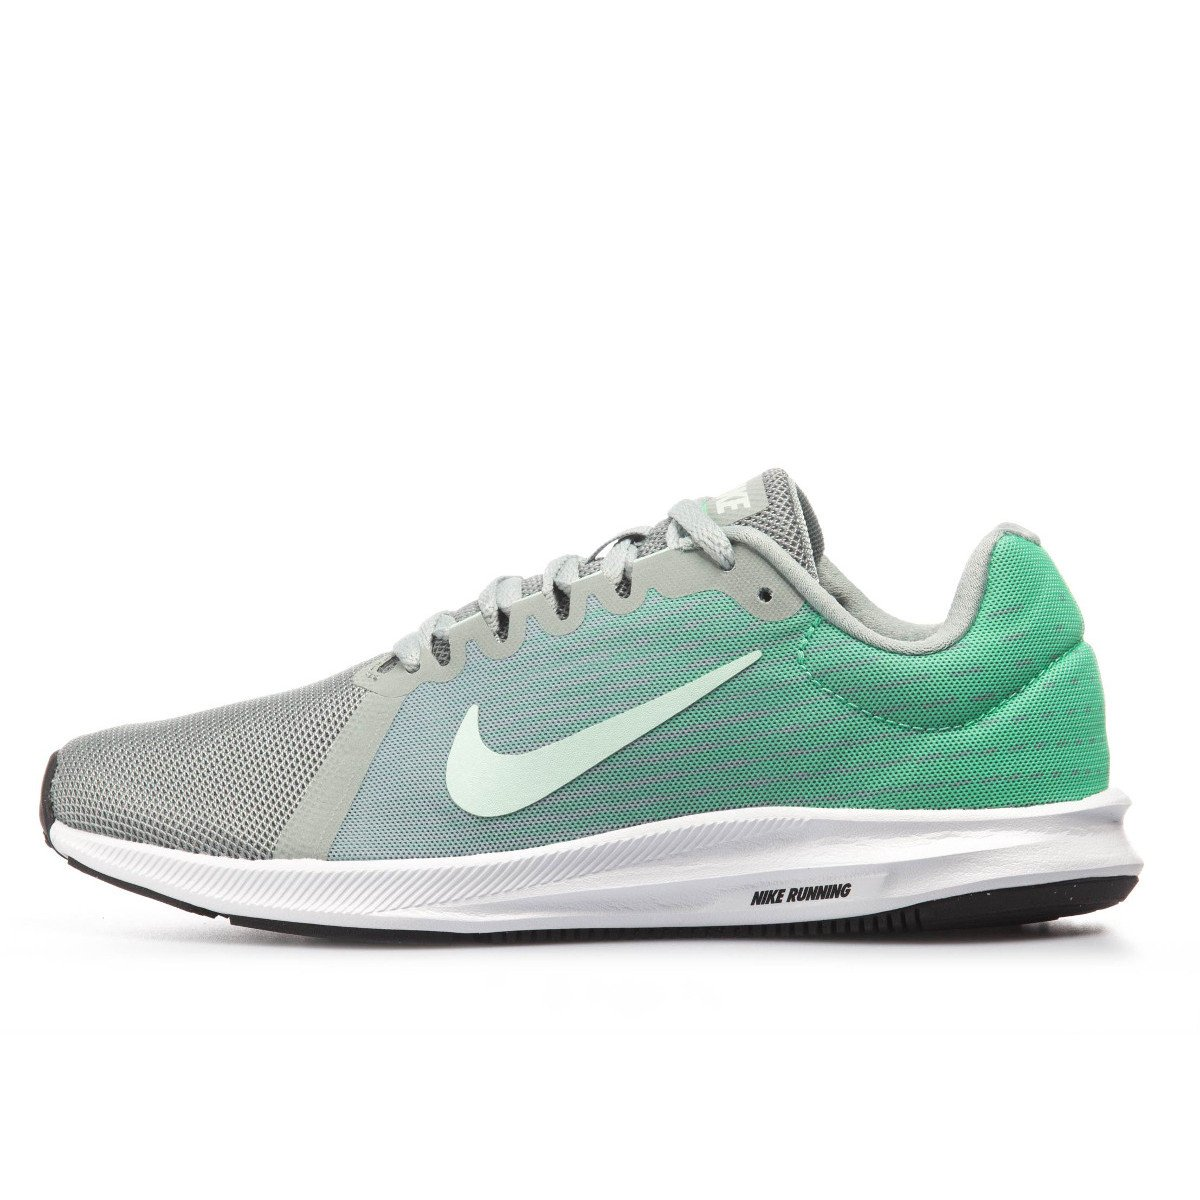 537966490882a Galleon - Nike WMNS Downshifter 8 Womens 908994-003 Size 5.5